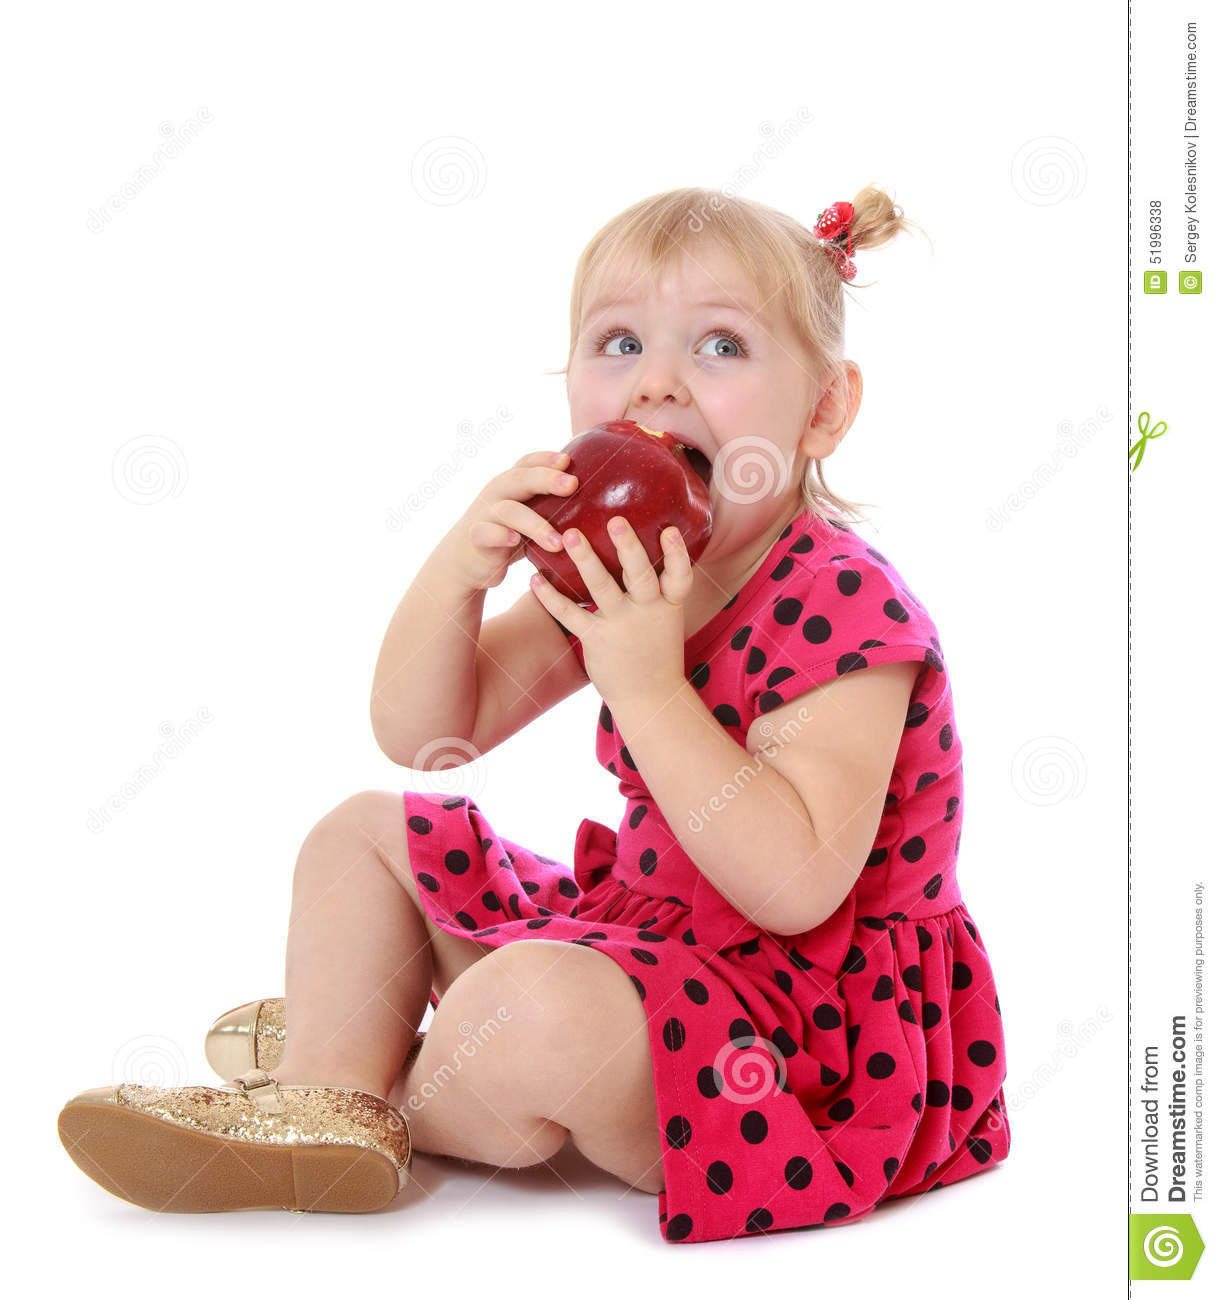 8161c493025 Little Girl In Red Dress Eating An Apple Sitting Stock Photo - Image ...